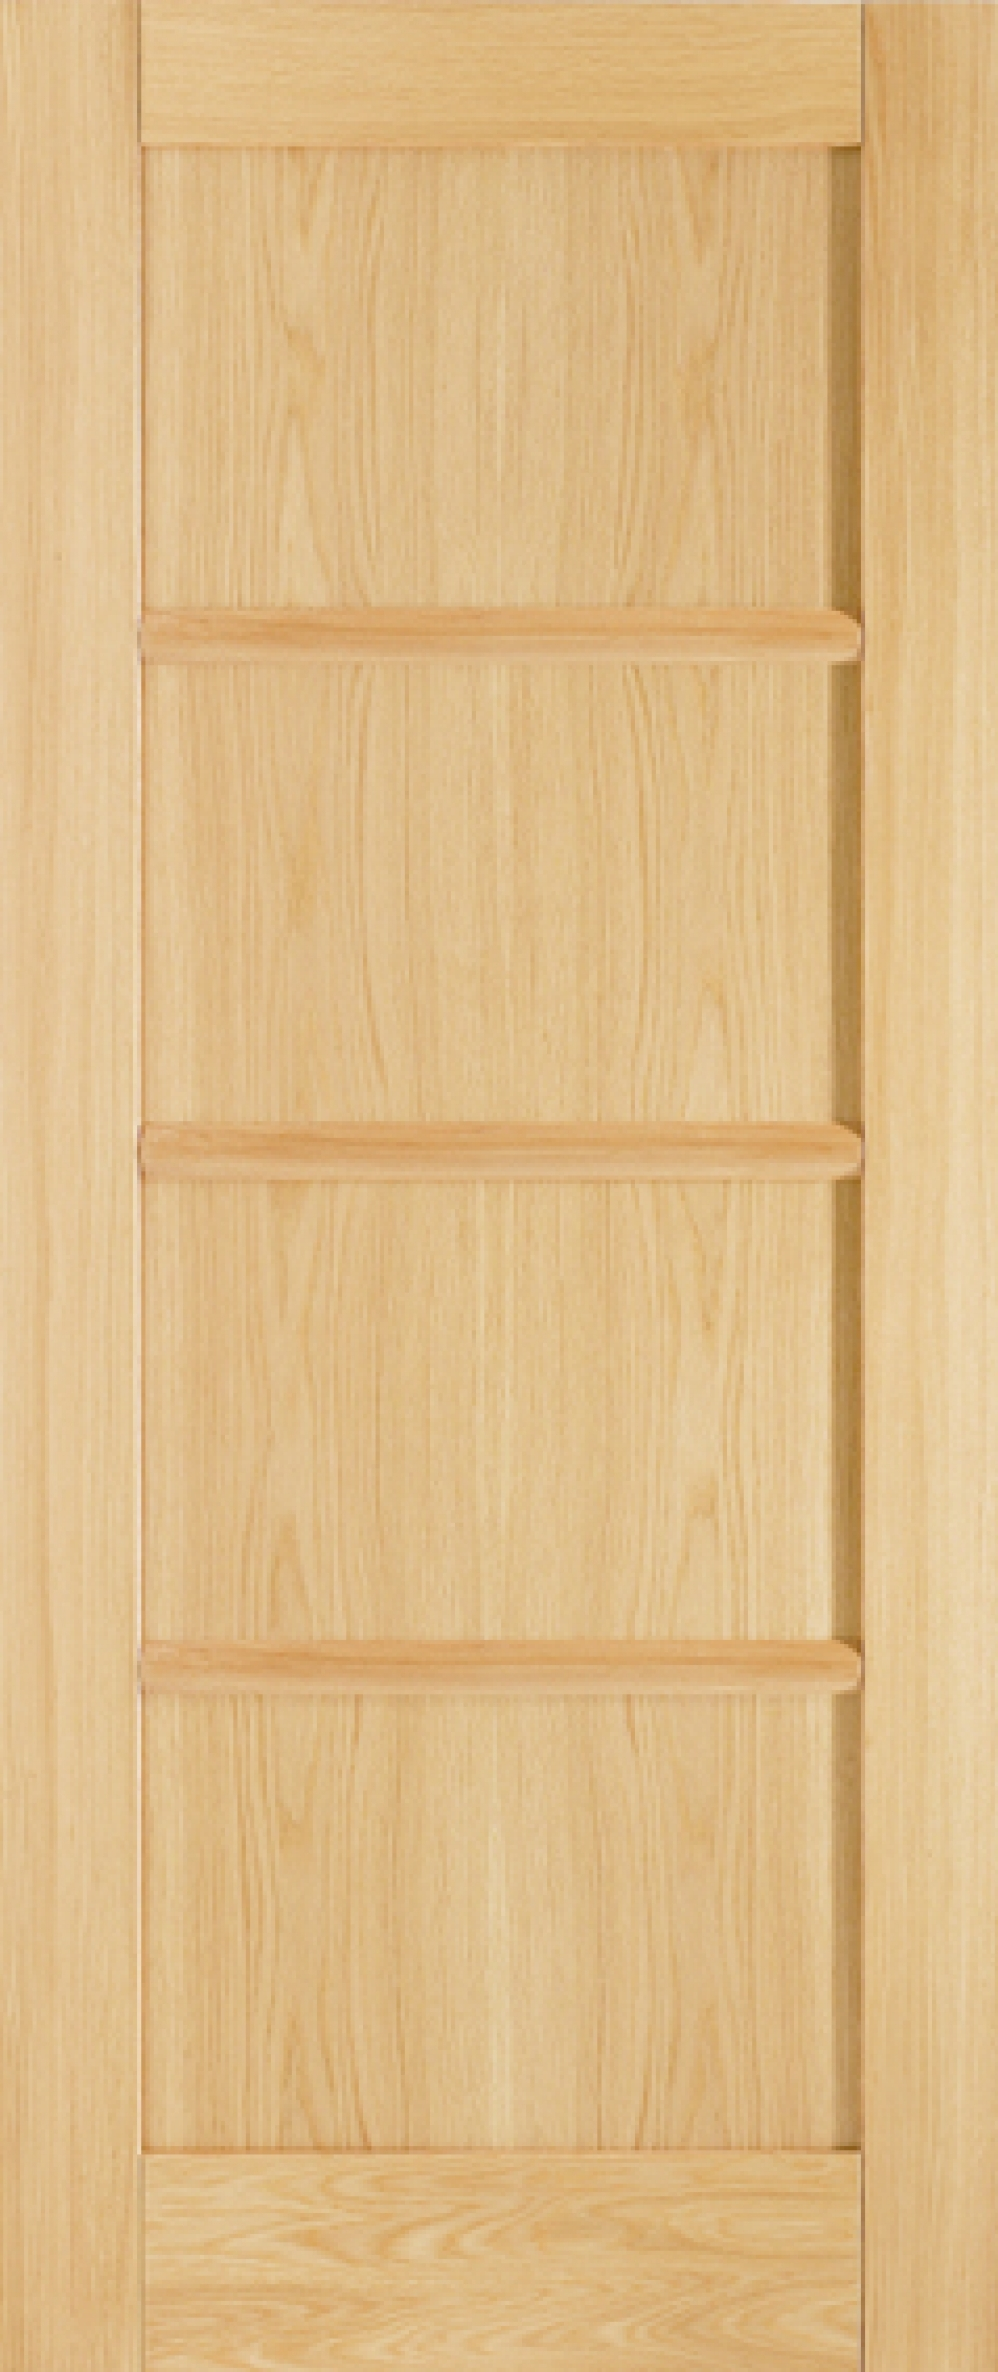 Oslo 4P Oak - PREFINISHED:  Image